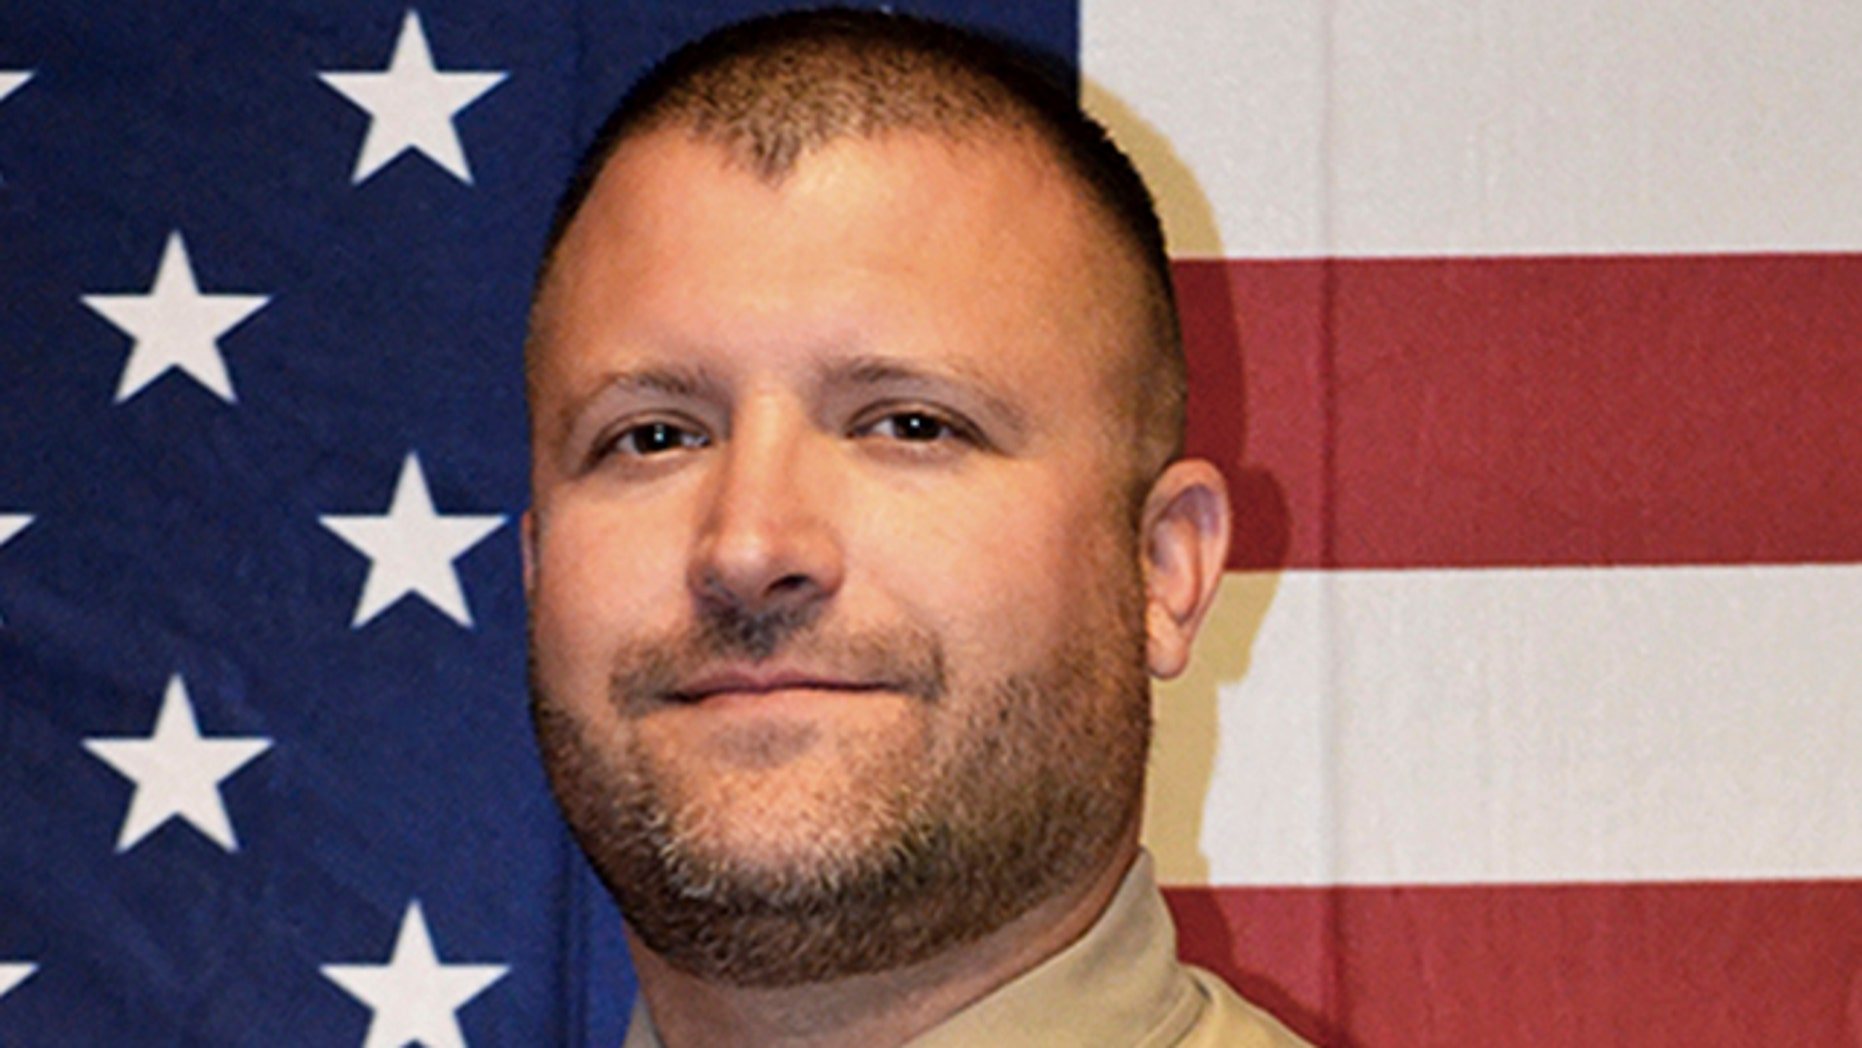 Deputy Ryan Thompson, 42, was shot and killed and a police officer was wounded after they exchanged gunfire with a road rage driving suspect Tuesday. (Kittitas County Sheriff's Office via AP)